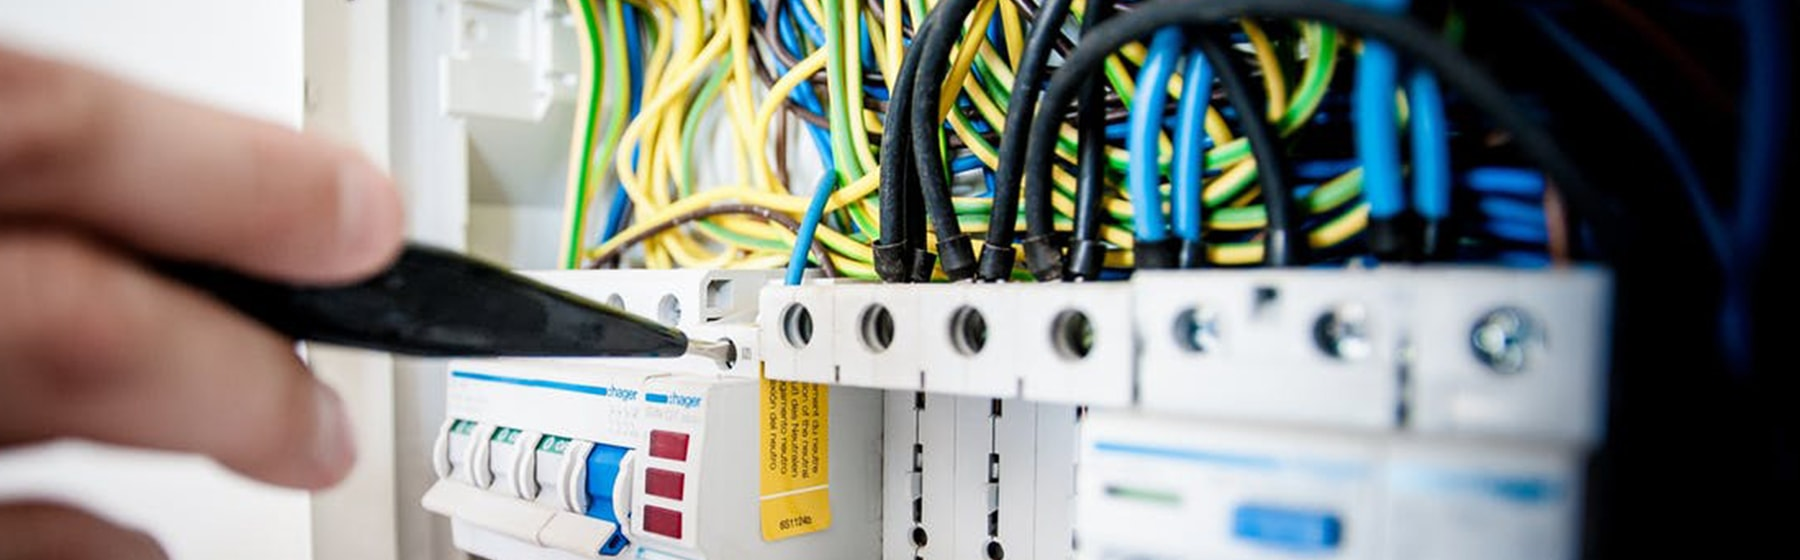 Data Structured Cabling Proici Wiring Commercial